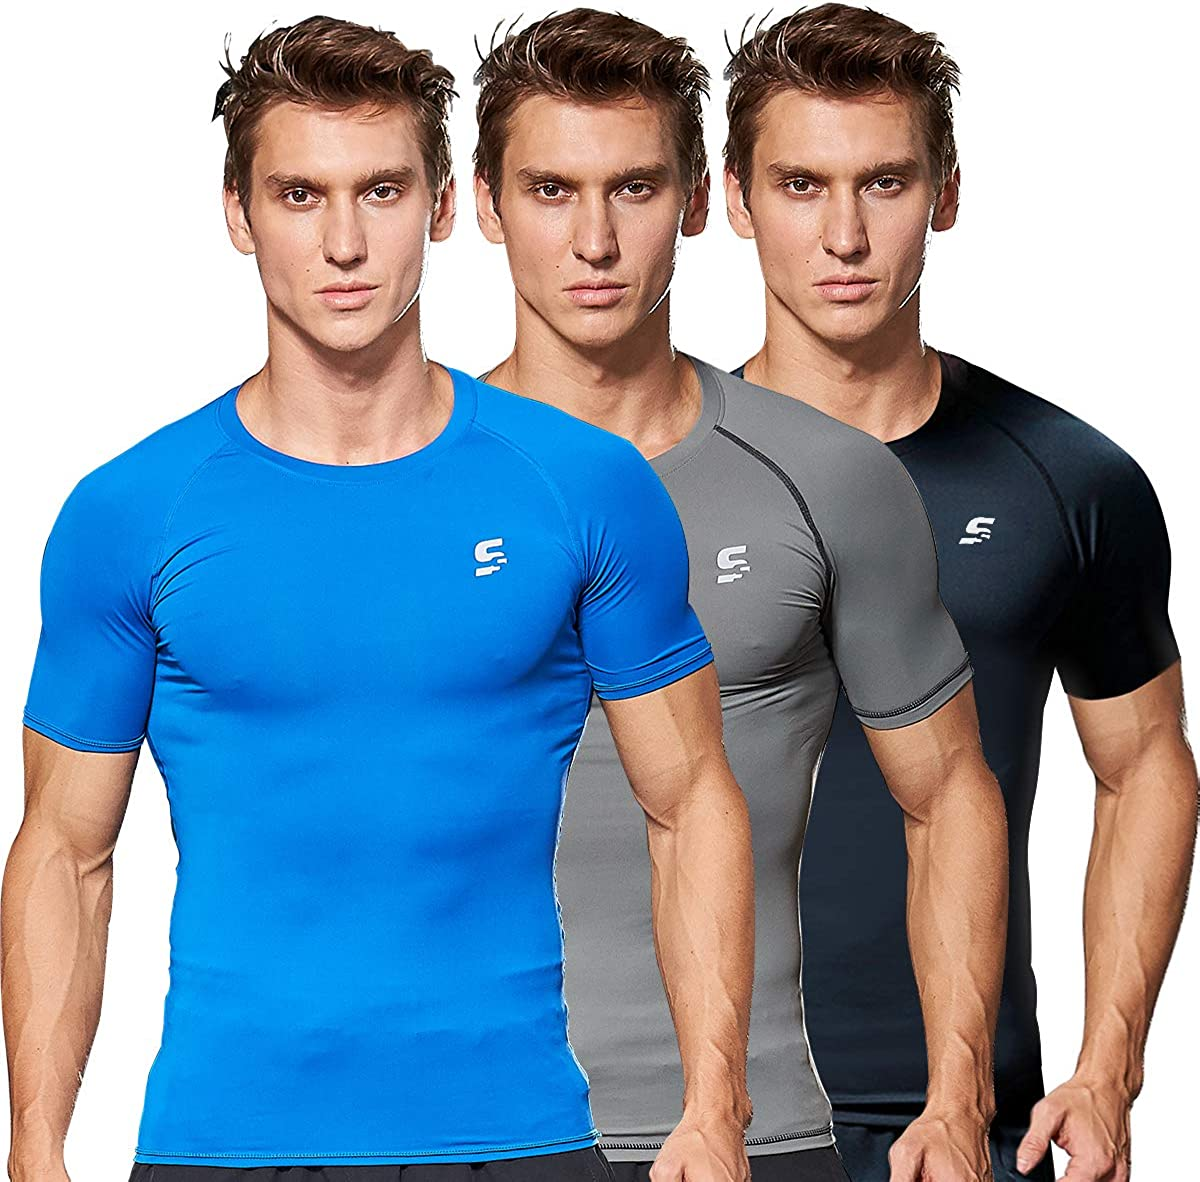 Men Compression Shirts Sports Running Workout Shirts for Men Gym Baselayer Tops Athletic T-Shirts